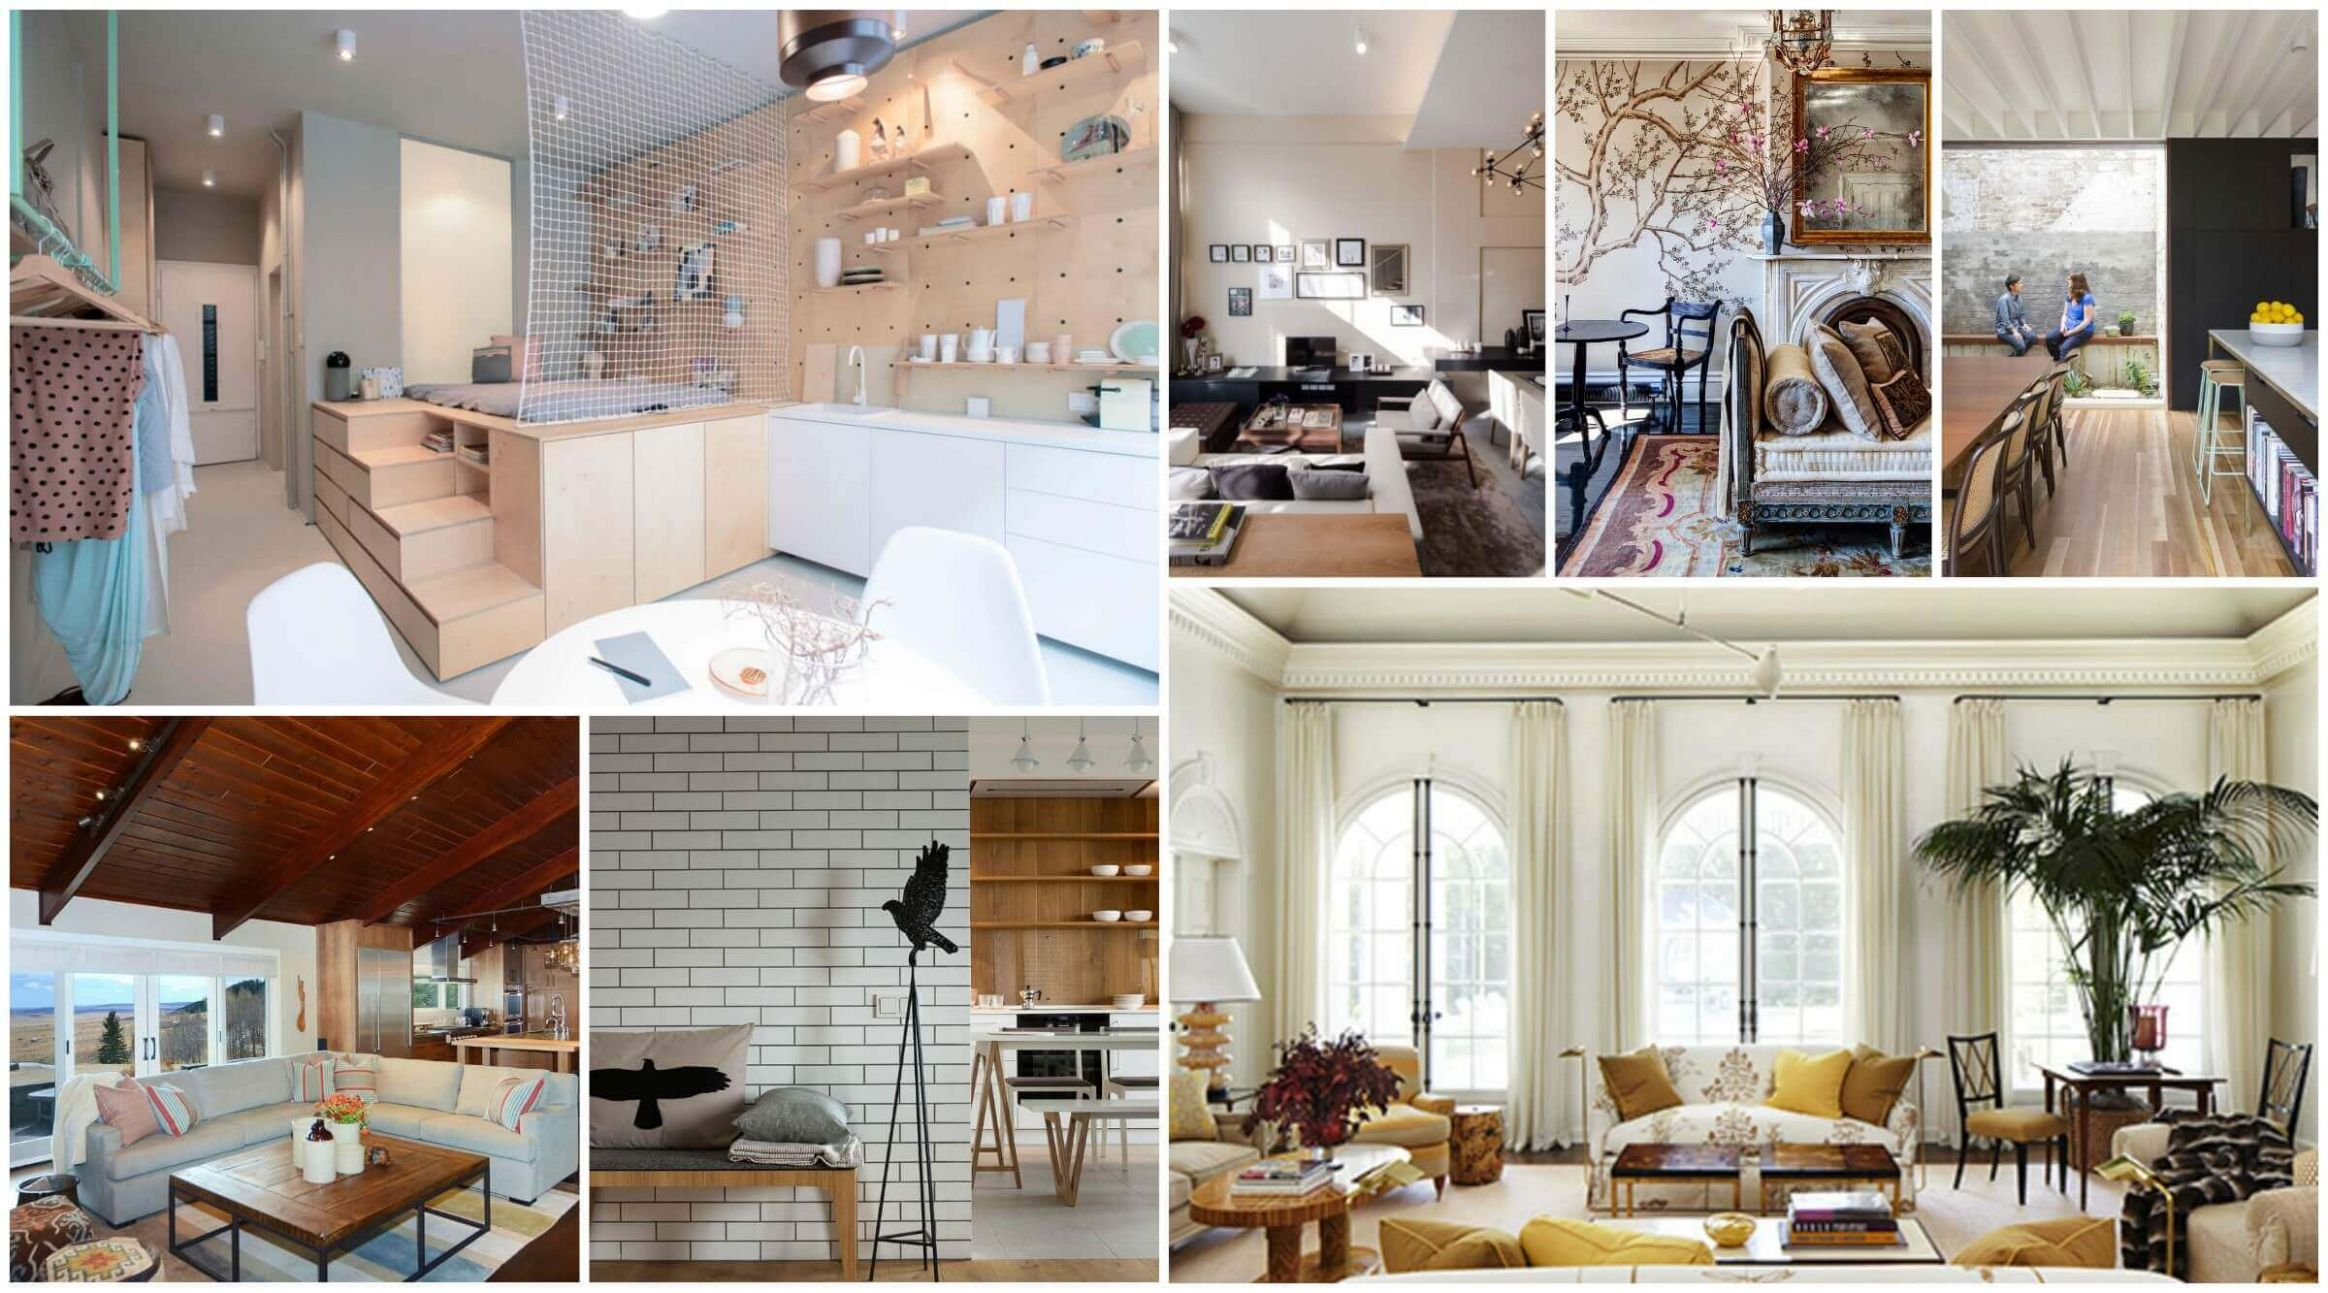 10+ Townhouse Interior Design Ideas For A Modern Townhouse - townhouse room inspiration